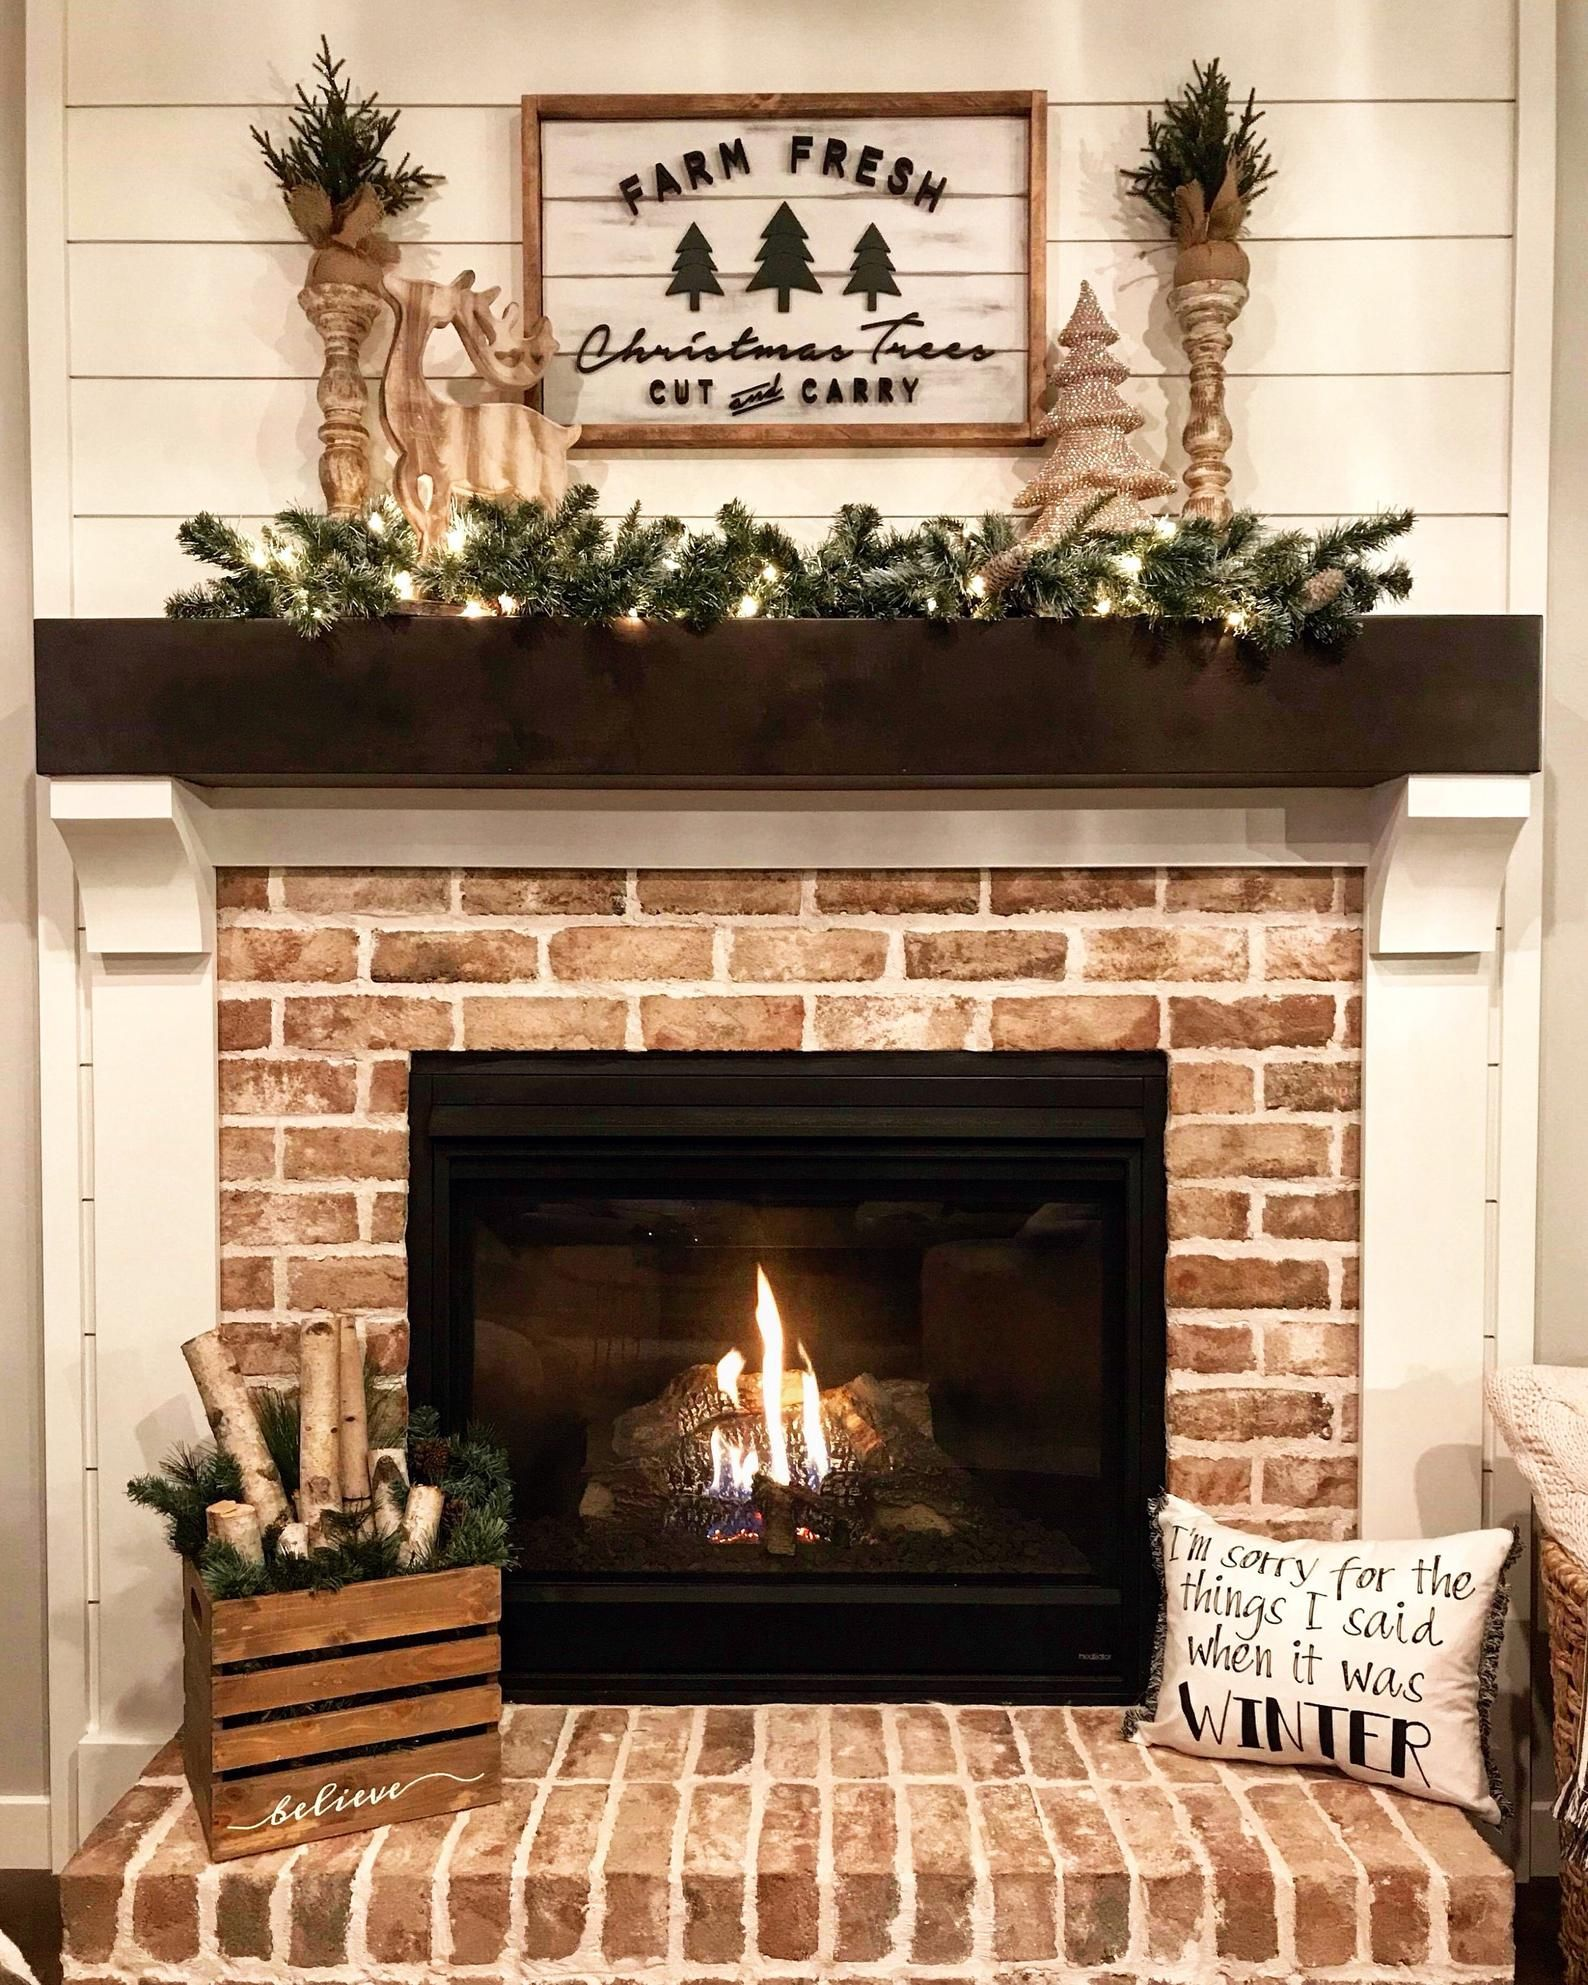 Photo of Christmas Tree Sign / Farmhouse Style Wall Decor / Farm Fresh Christmas Trees Sign / Holiday Sign / Wall Art / 3D Sign / Wood Signs